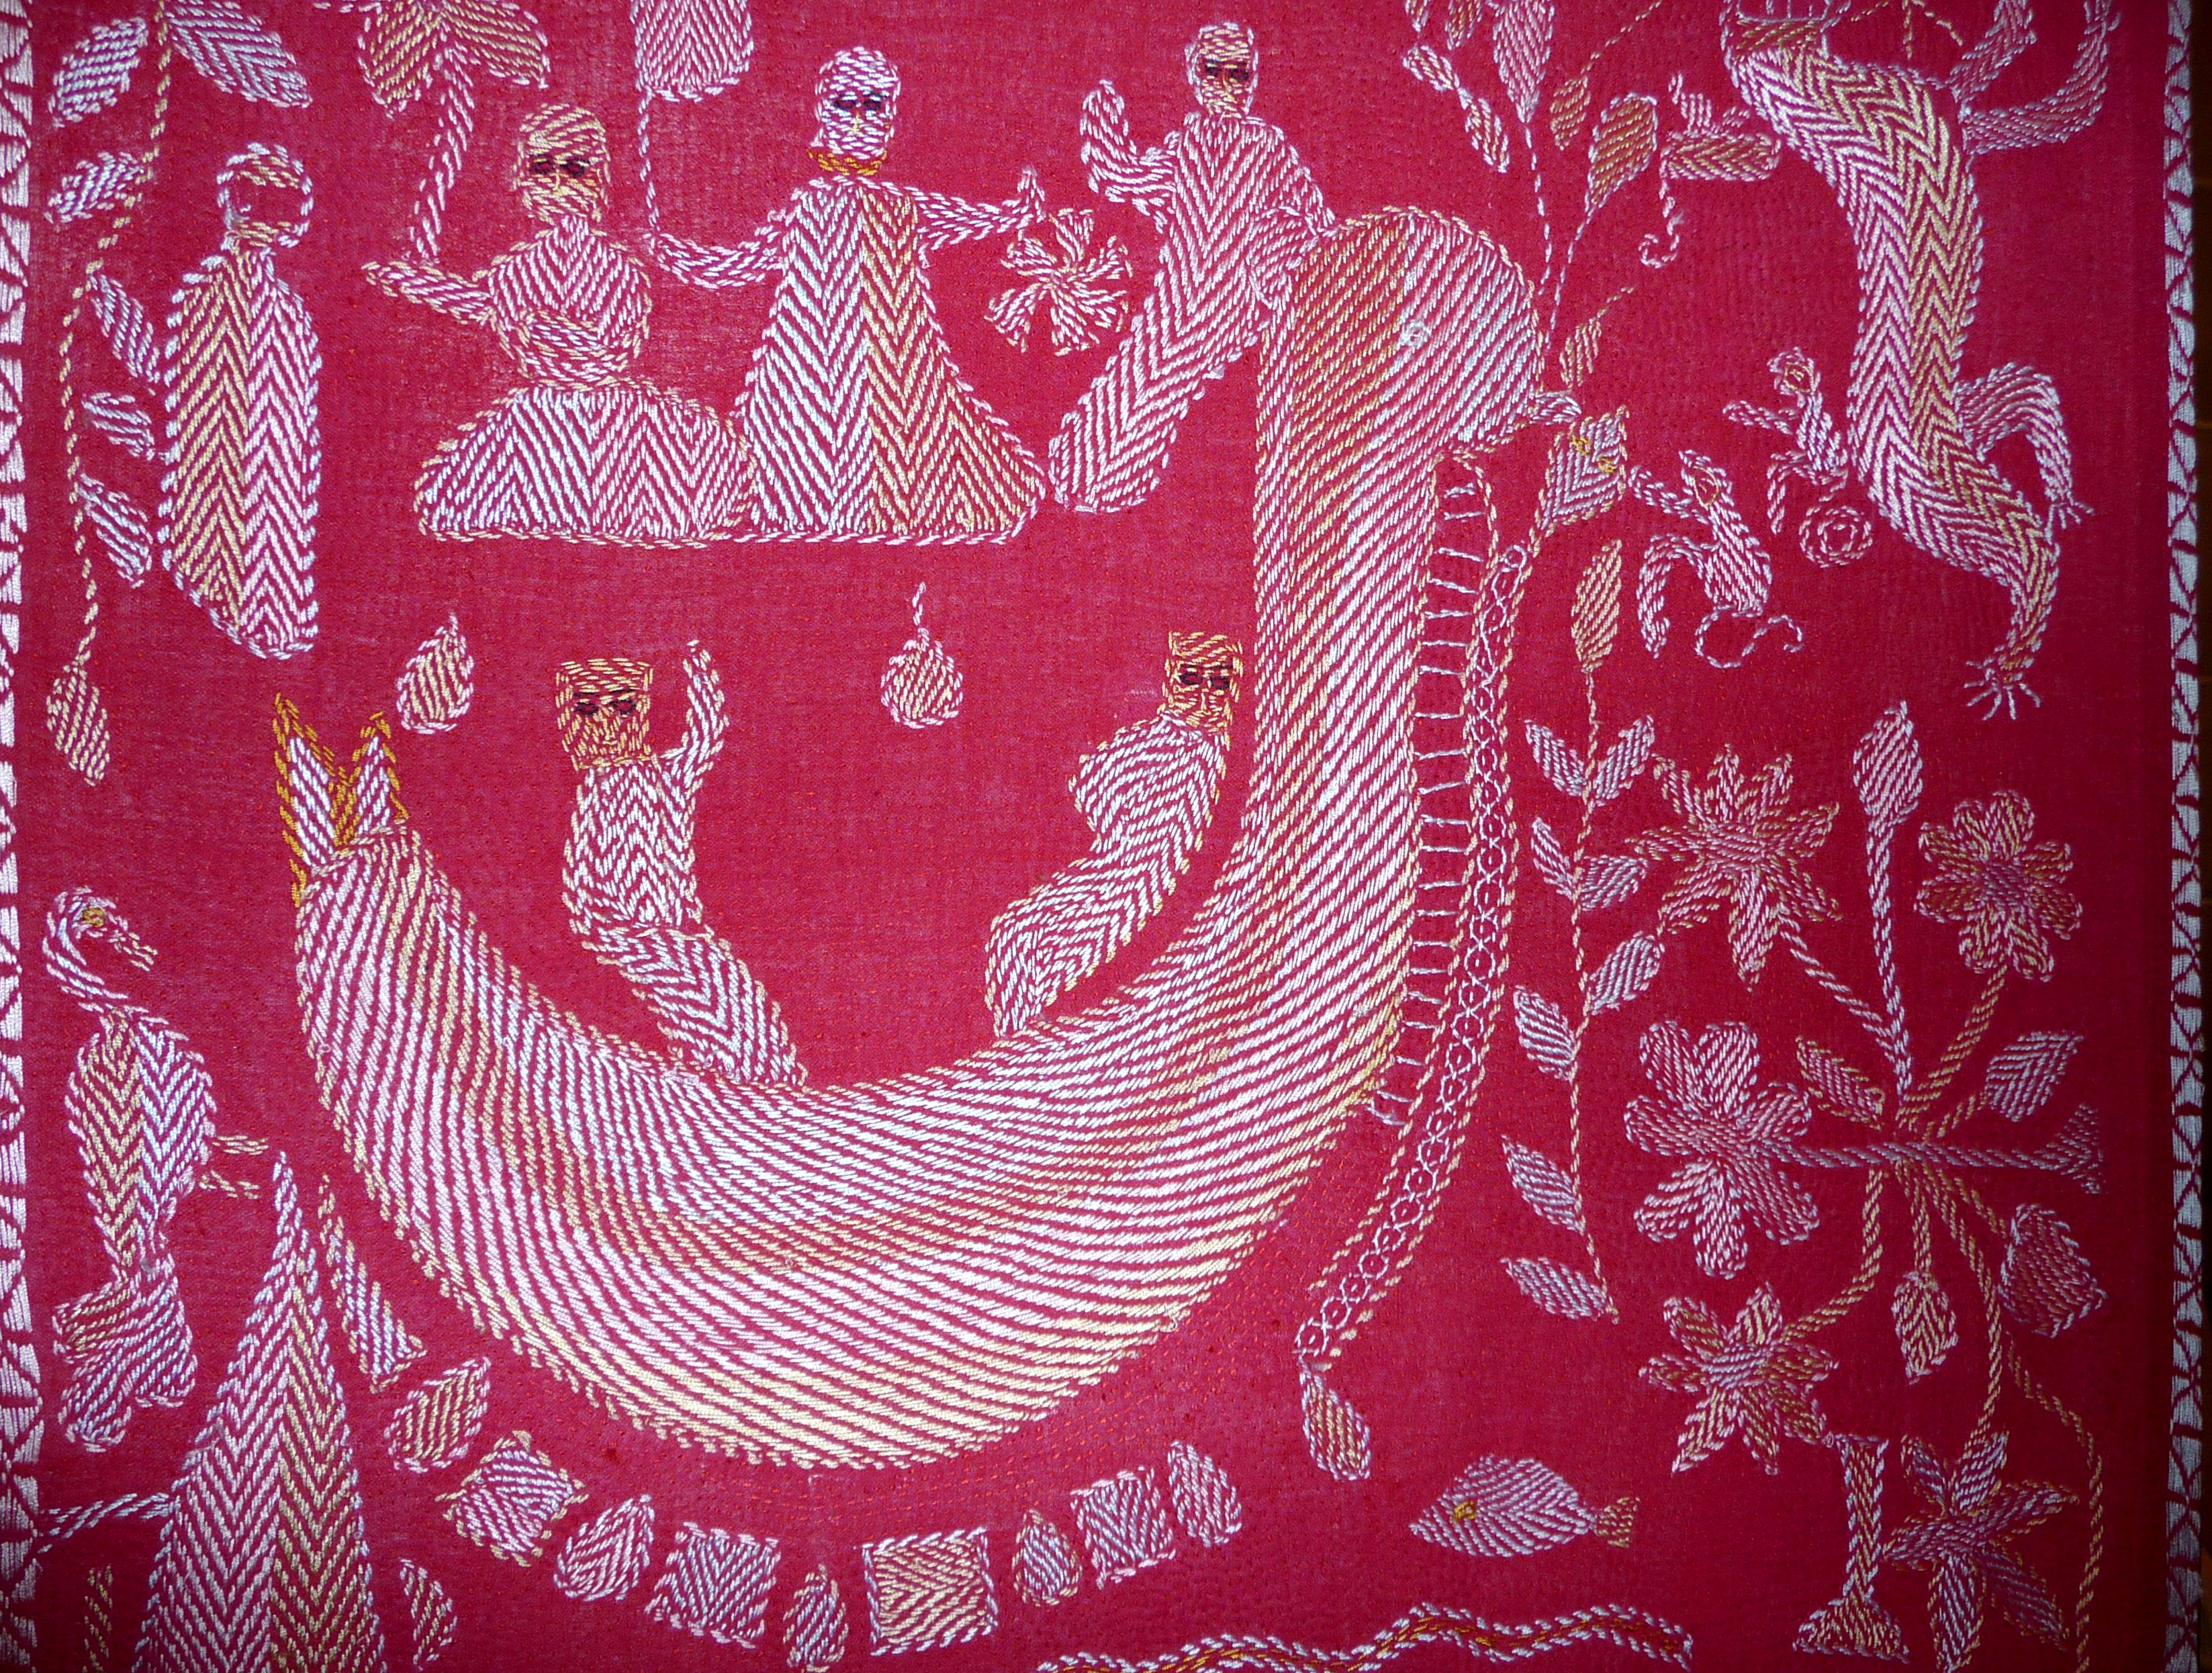 detail of kantha embroidery made in Bangladesh